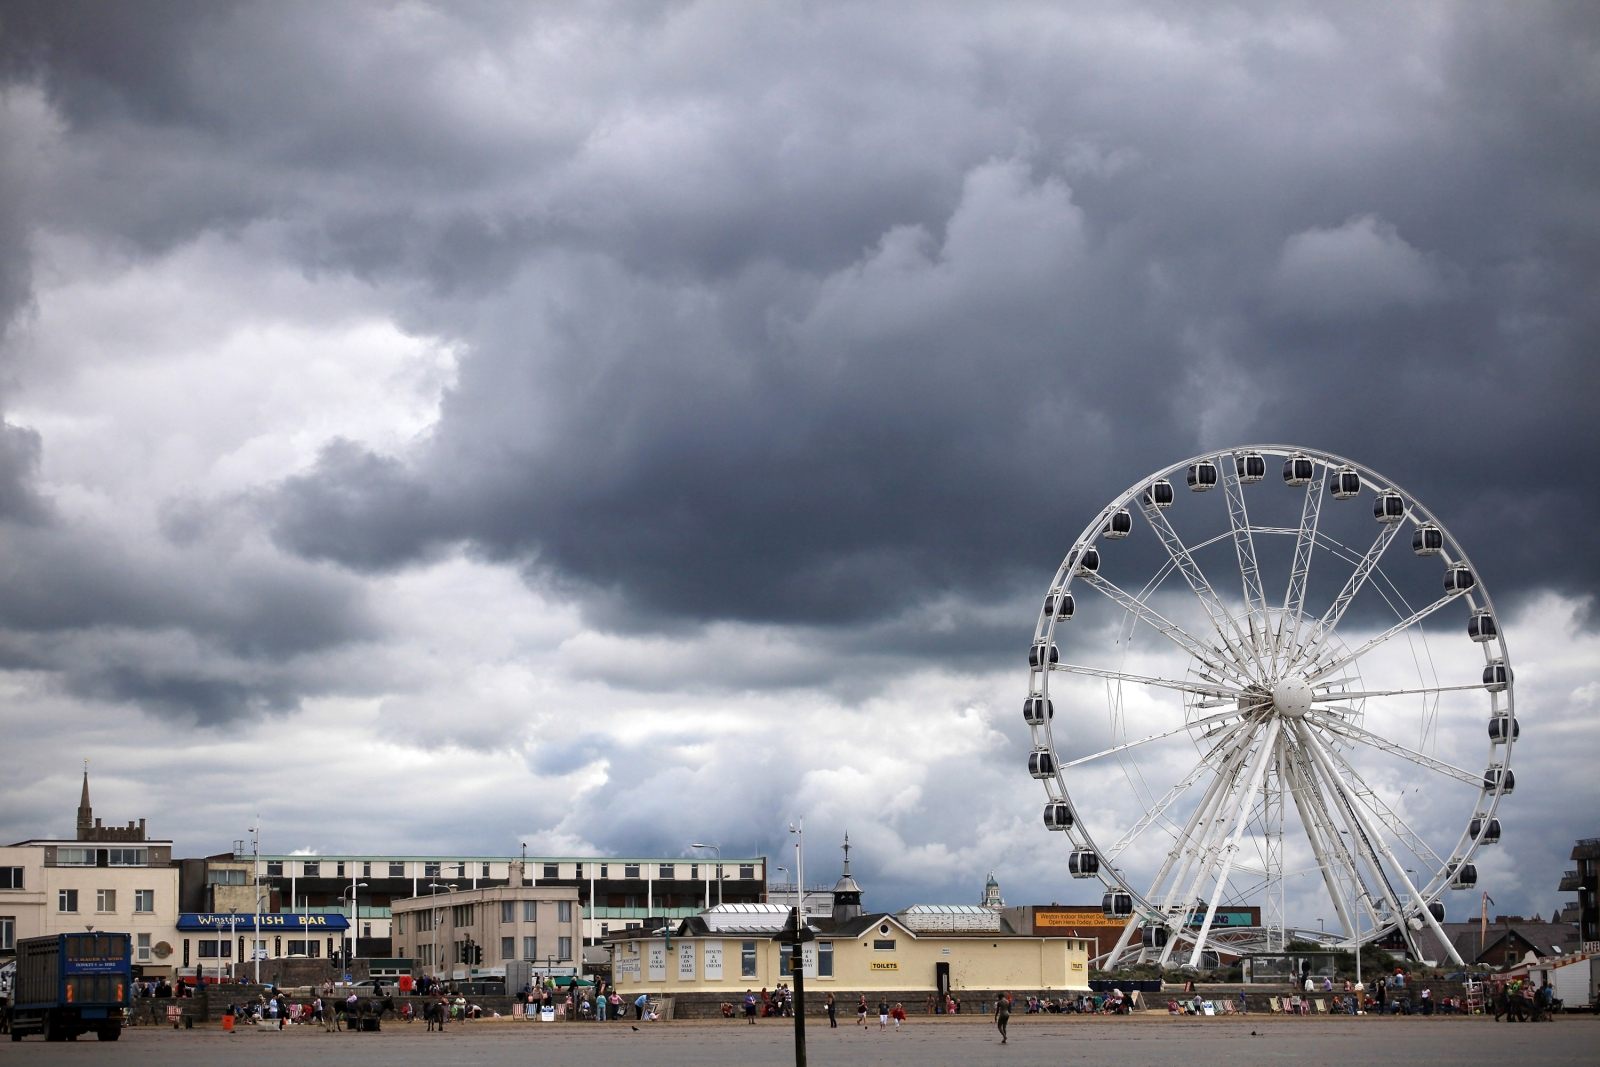 Storms clouds gather above Weston Super Mare